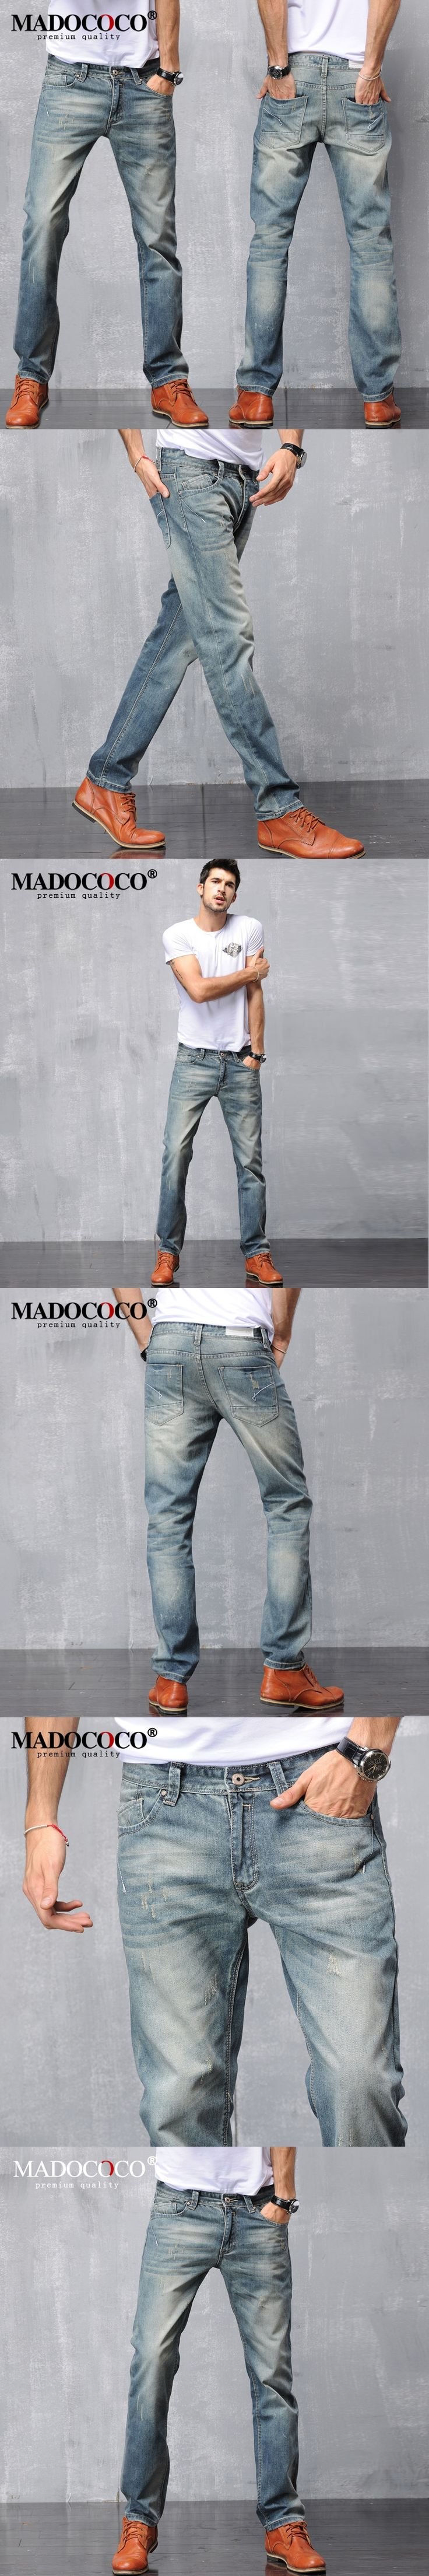 2017 Brand New Cotton Retro Mens Robin Jeans High Quality Light Blue Designer Vintage Jeans Man Wild Straight Loose Jeans Biker